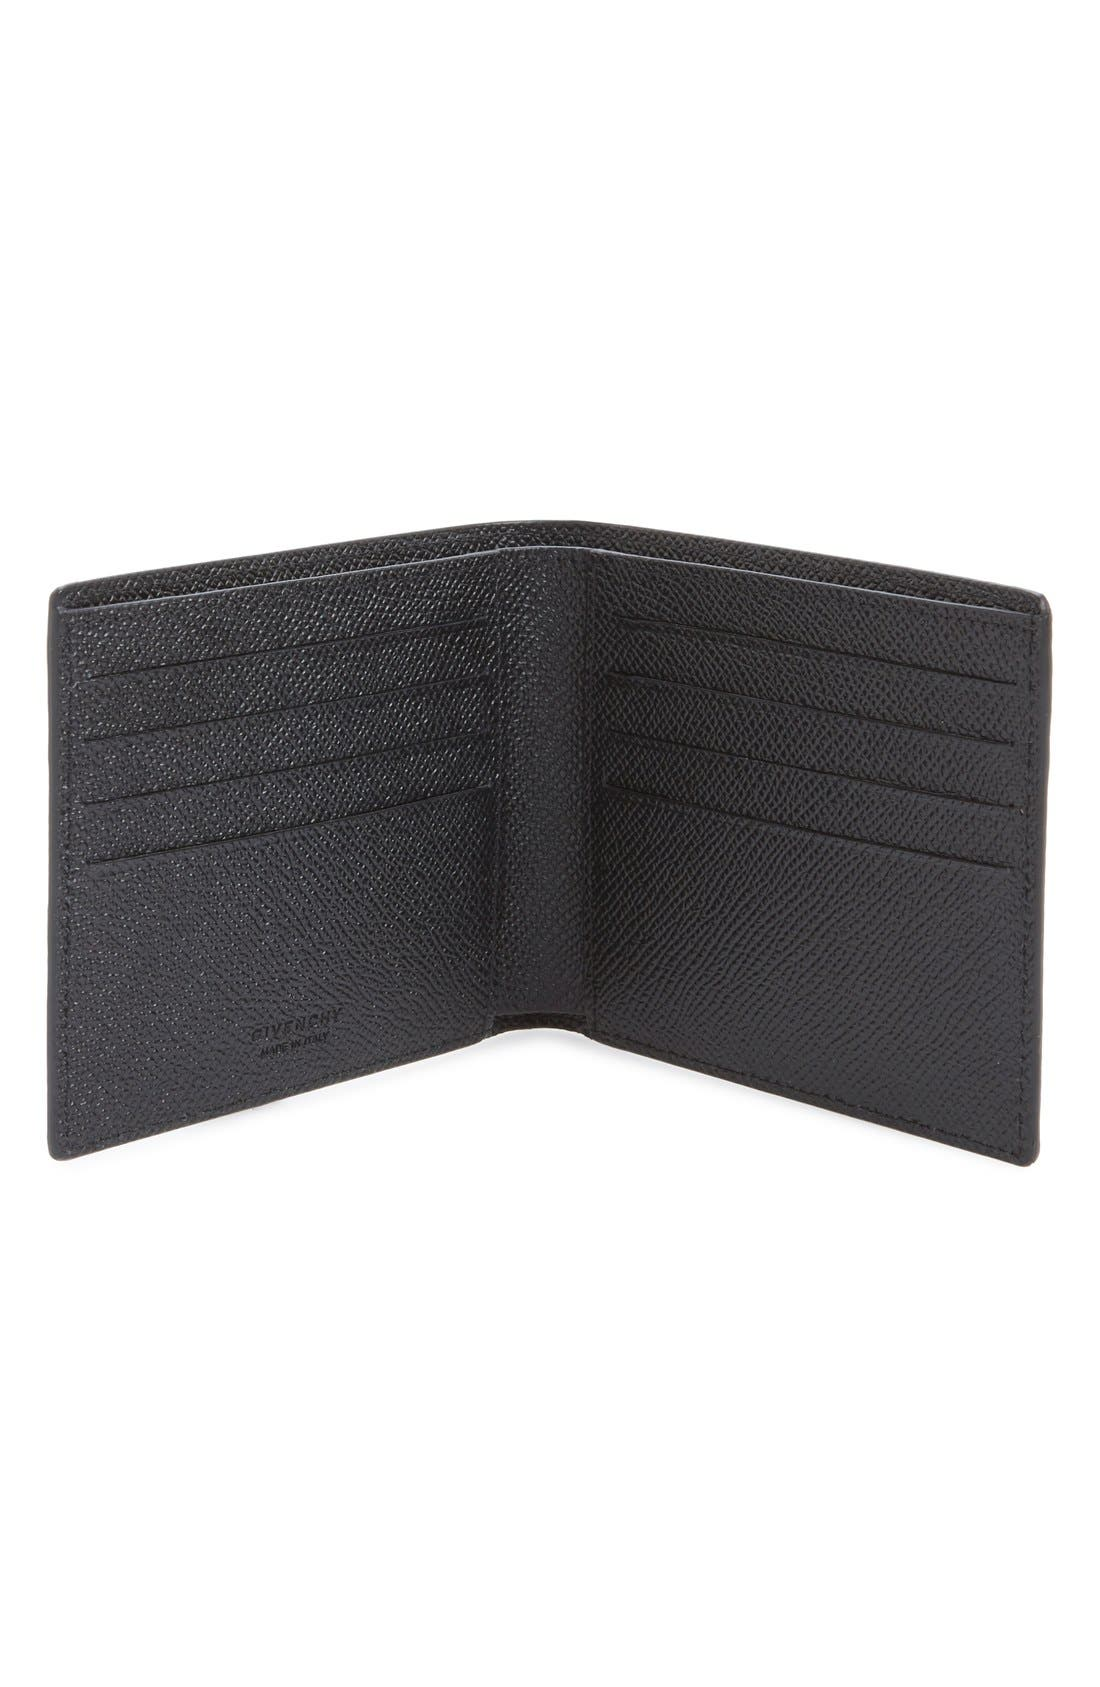 Calfskin Leather Bifold Wallet,                             Alternate thumbnail 2, color,                             BLACK